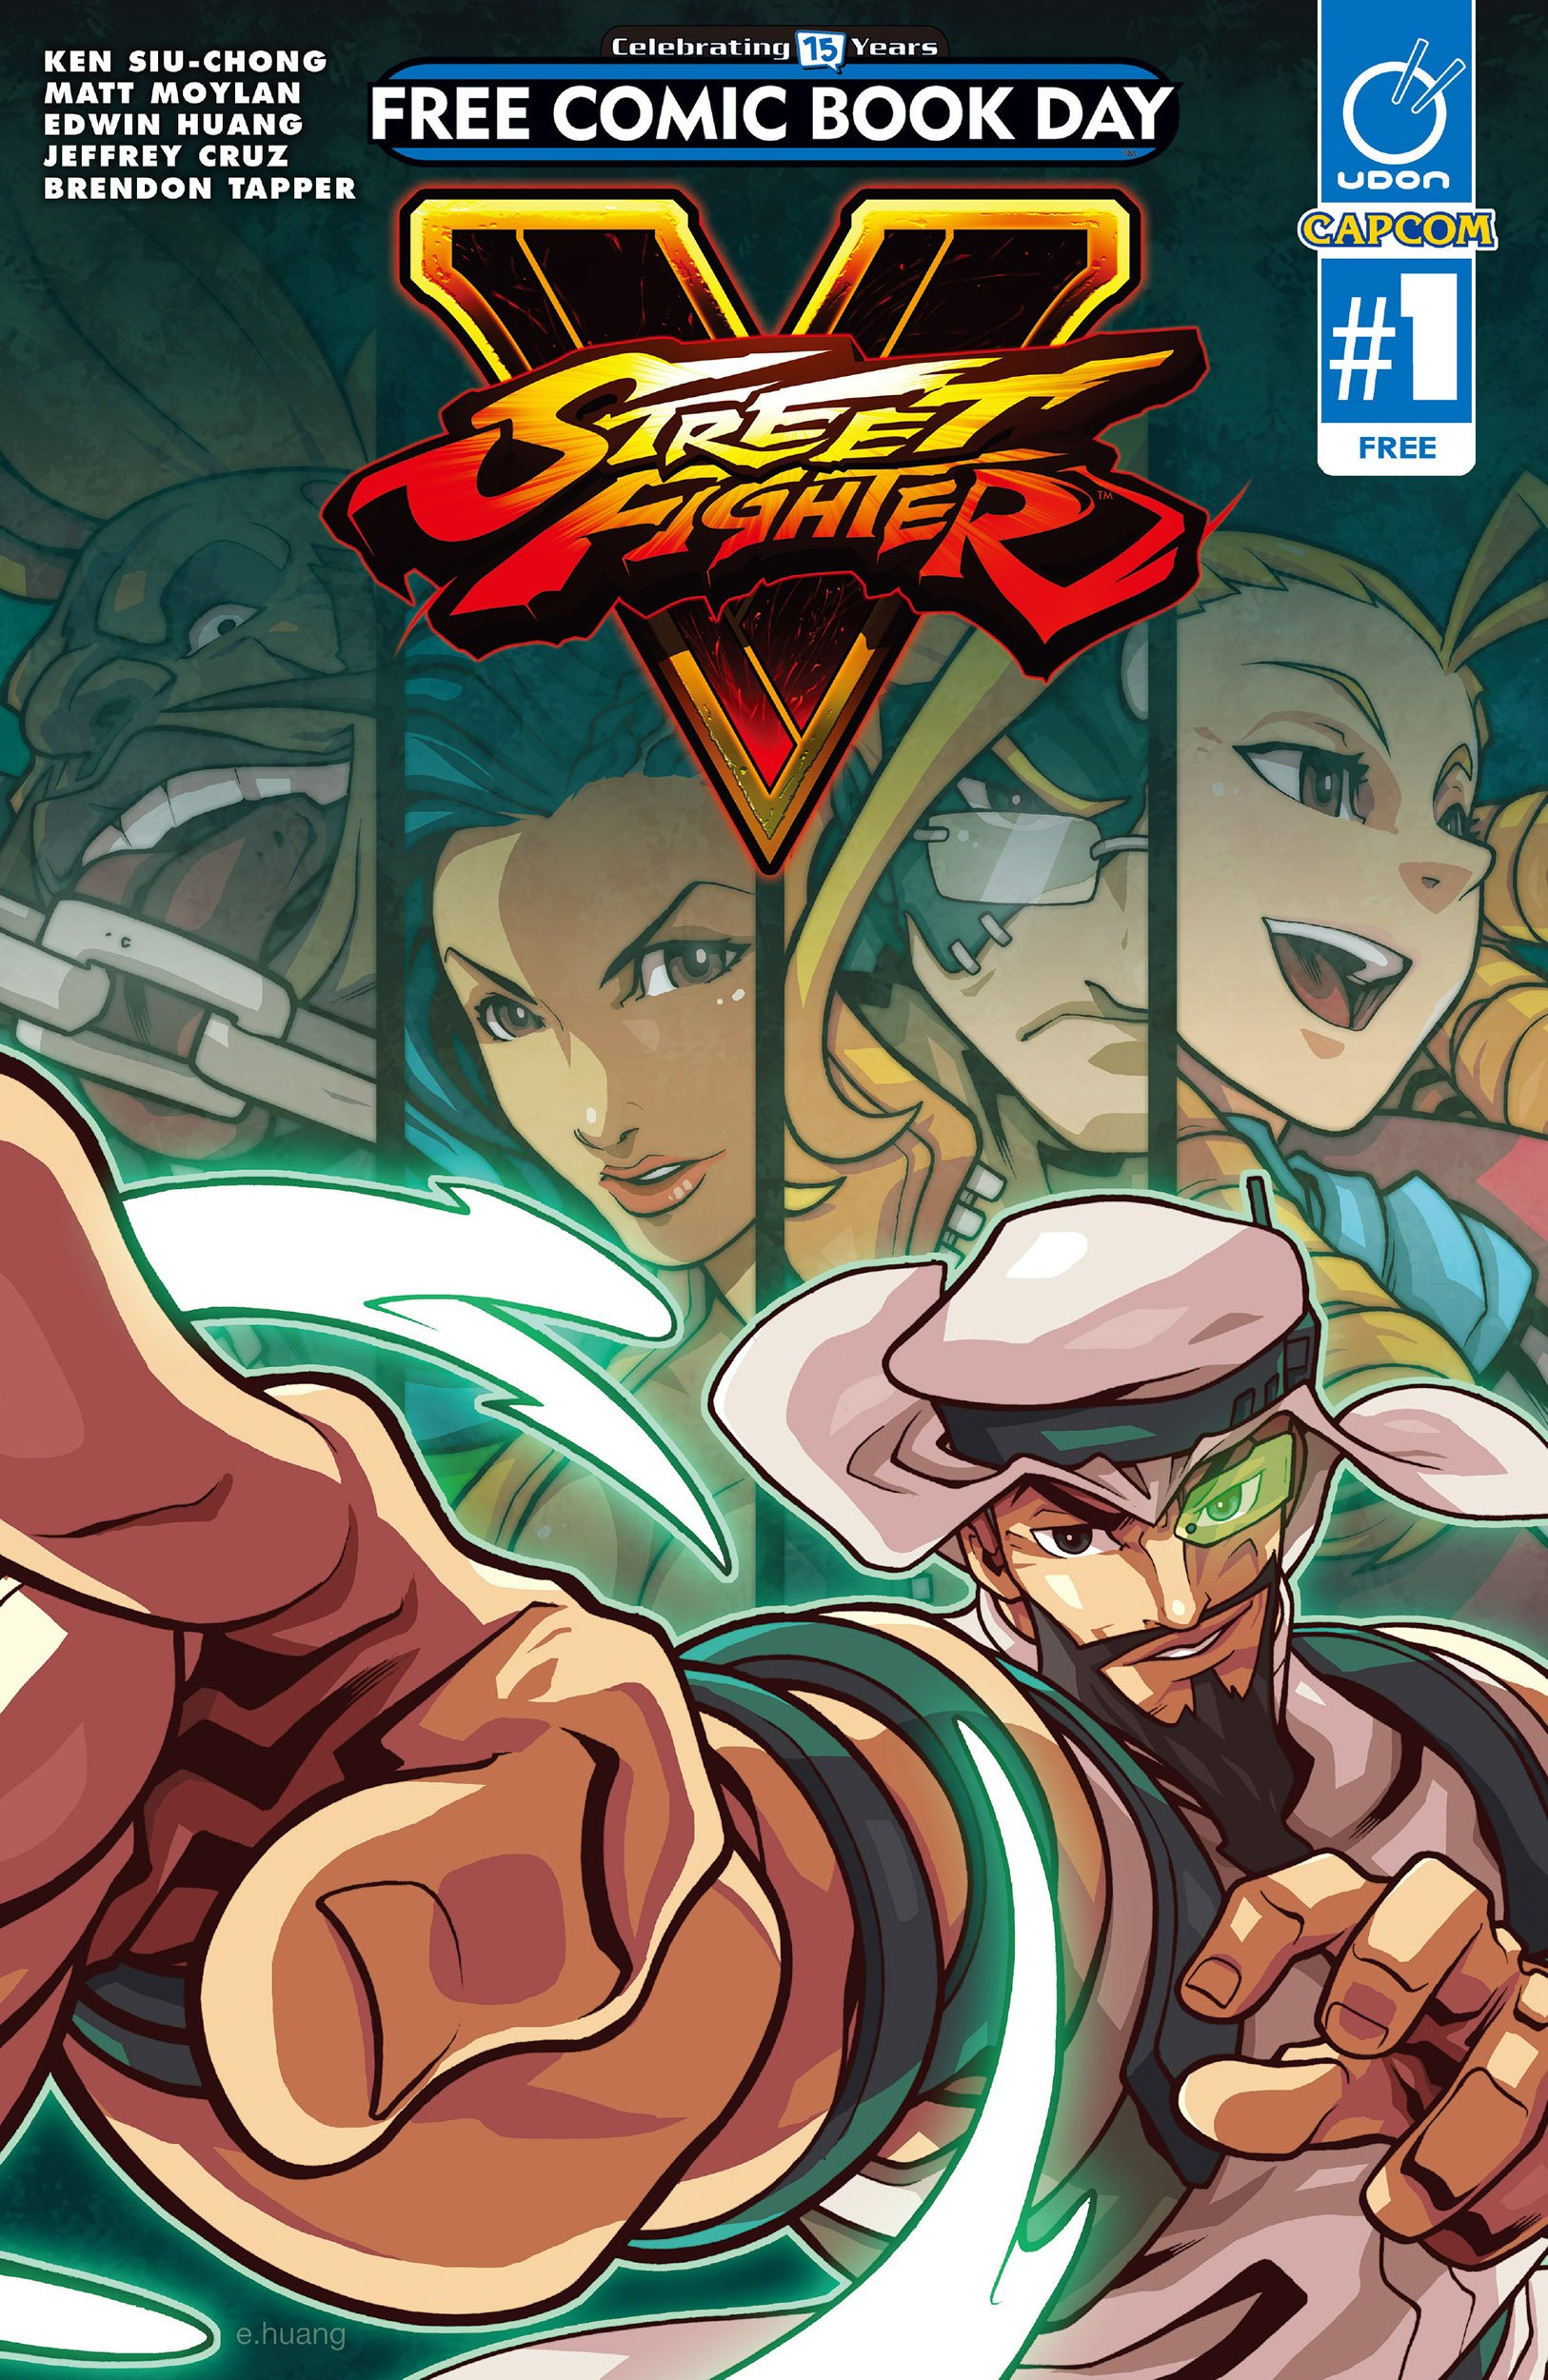 Street Fighter V - Free Comic Book Day 2016 Special (May 2016)